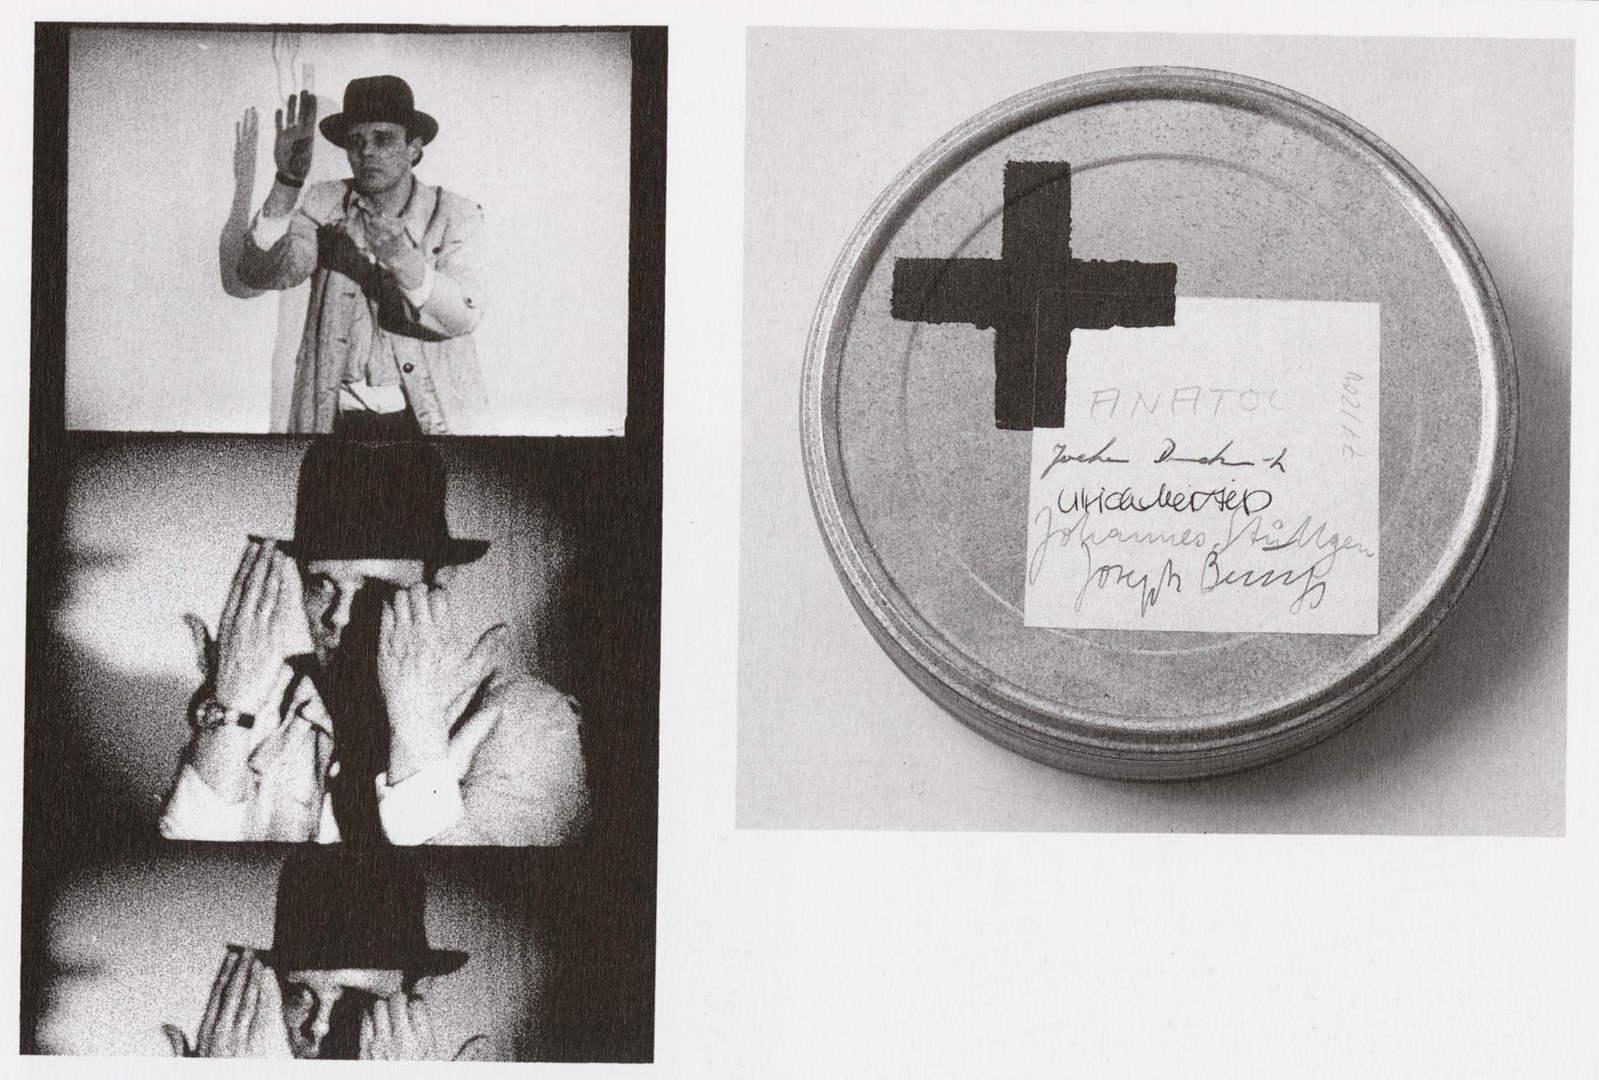 Joseph Beuys - Der Tisch, 1971, film (super 8) and magnetic tape in film can, label with oil paint (Browncross)